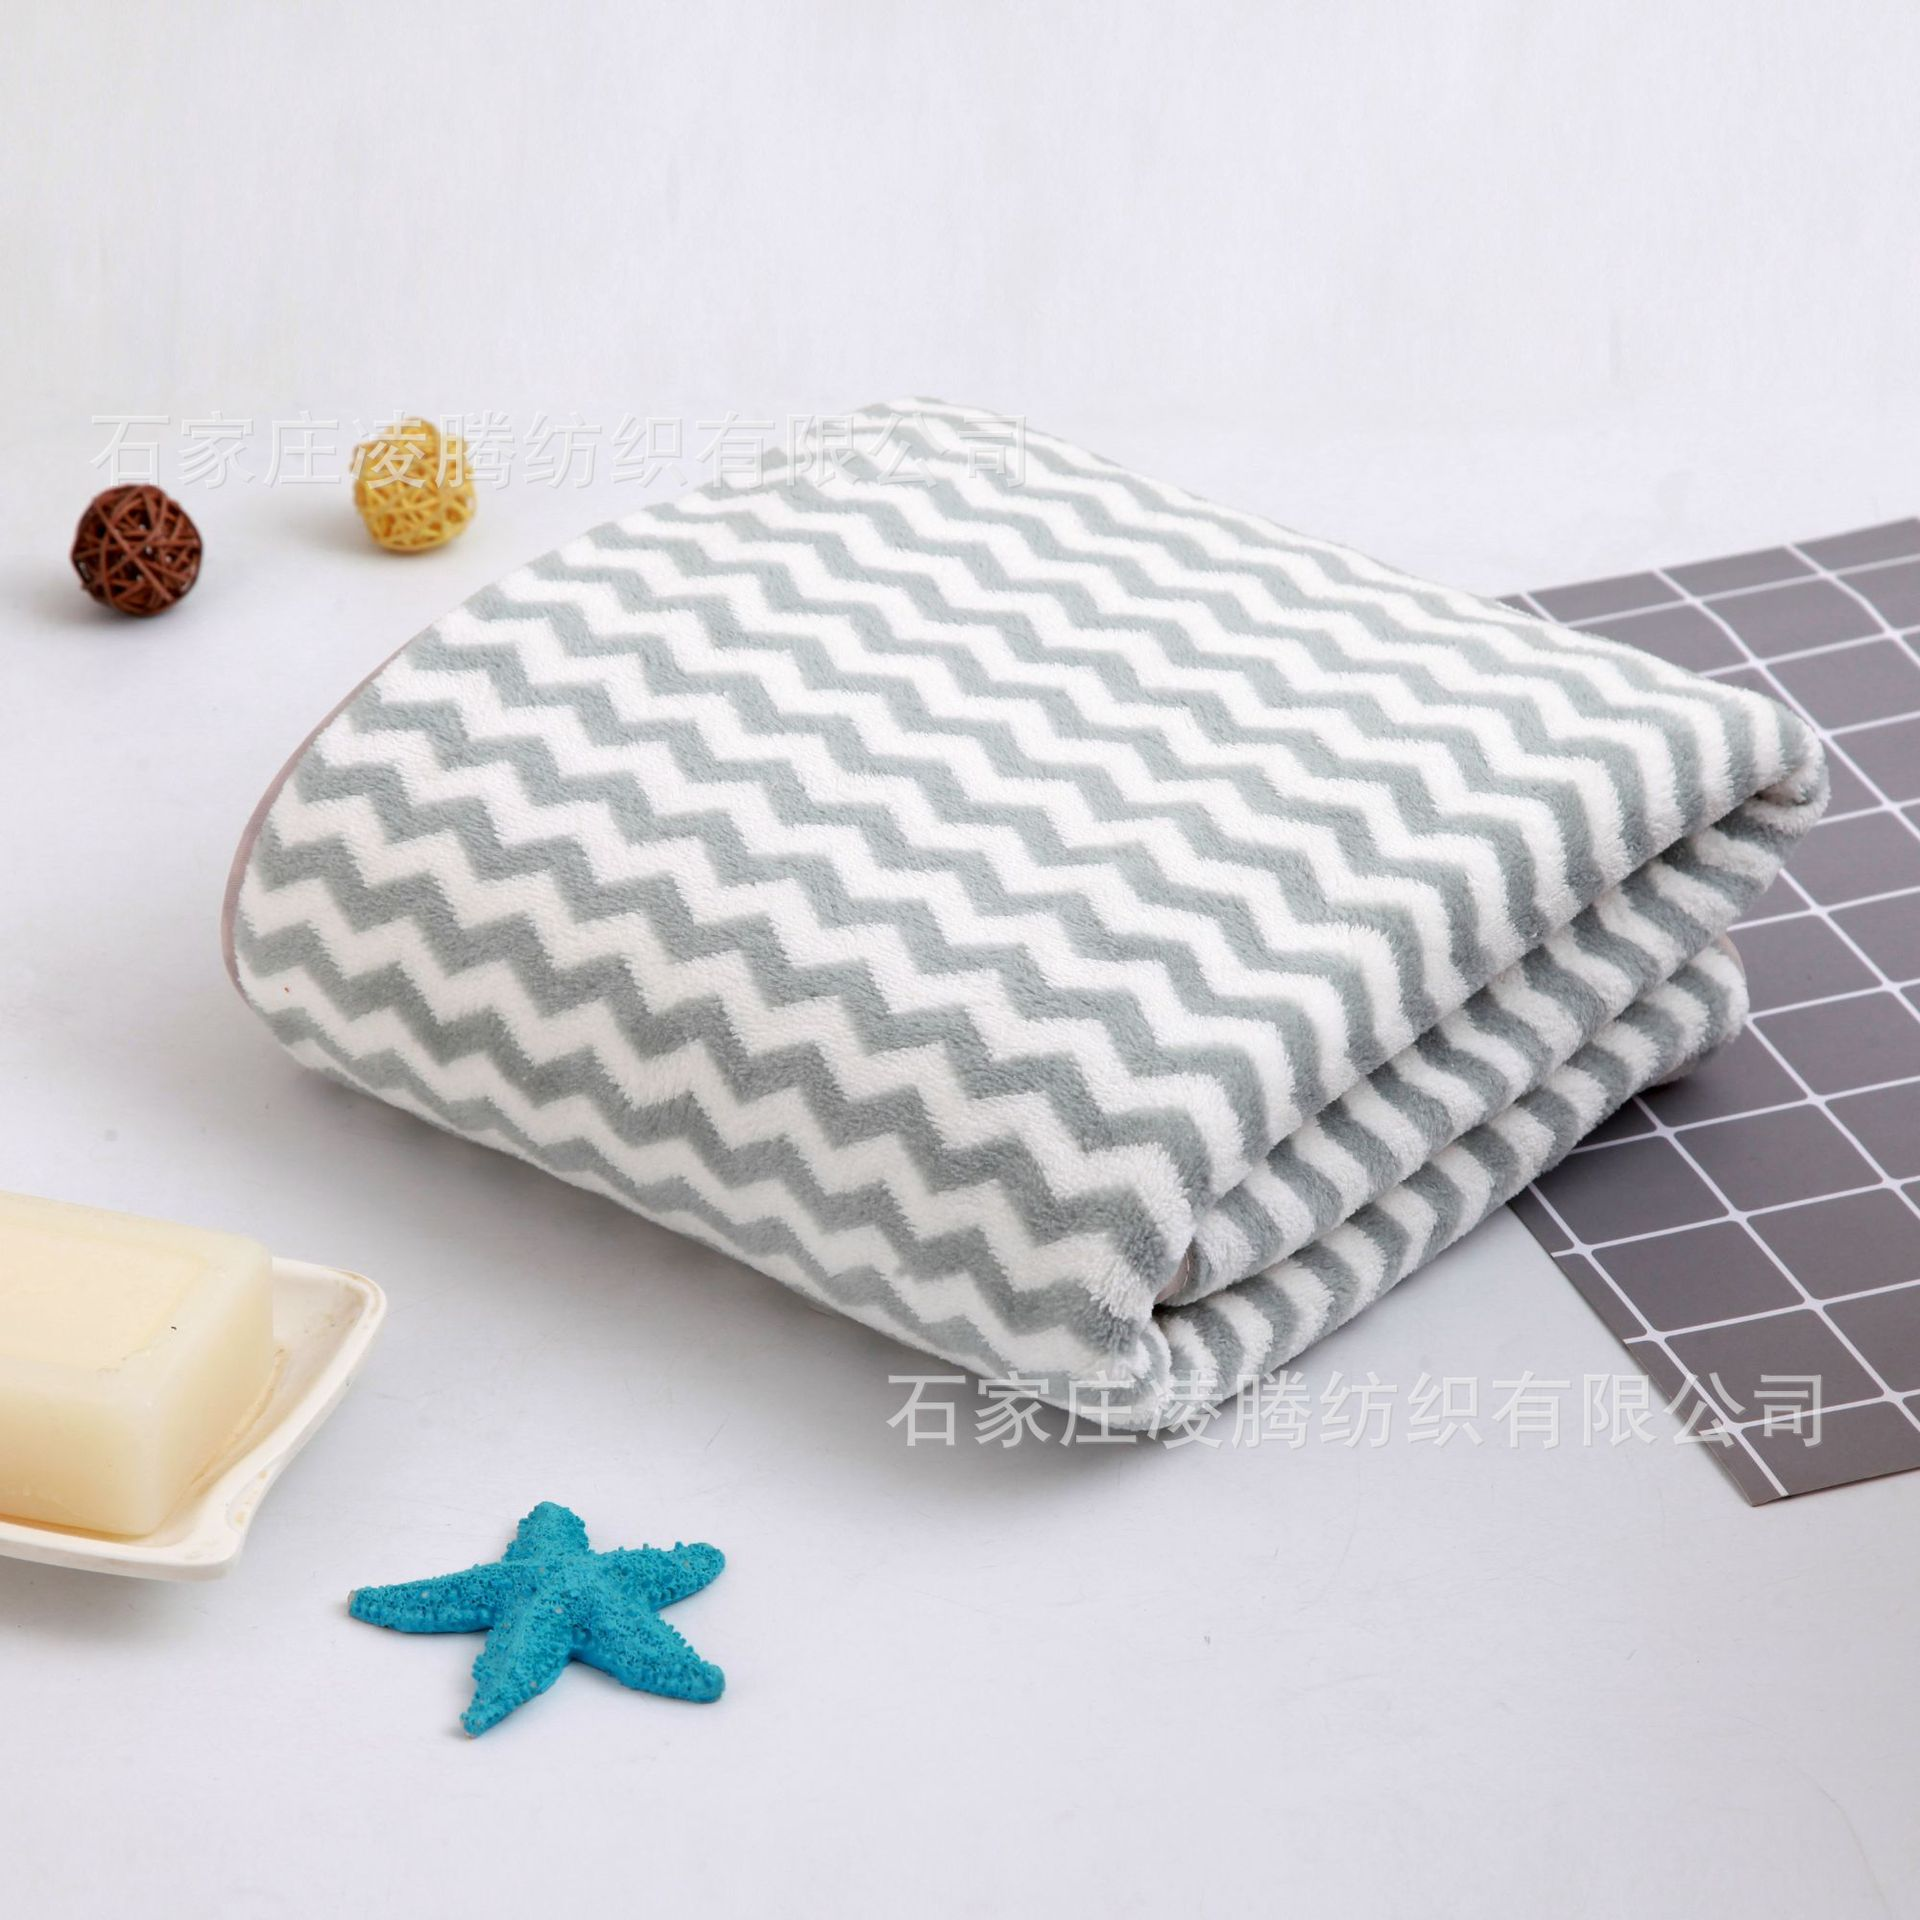 Absorbent Quick-Drying Microfiber Towel for Daily Bath Supplies